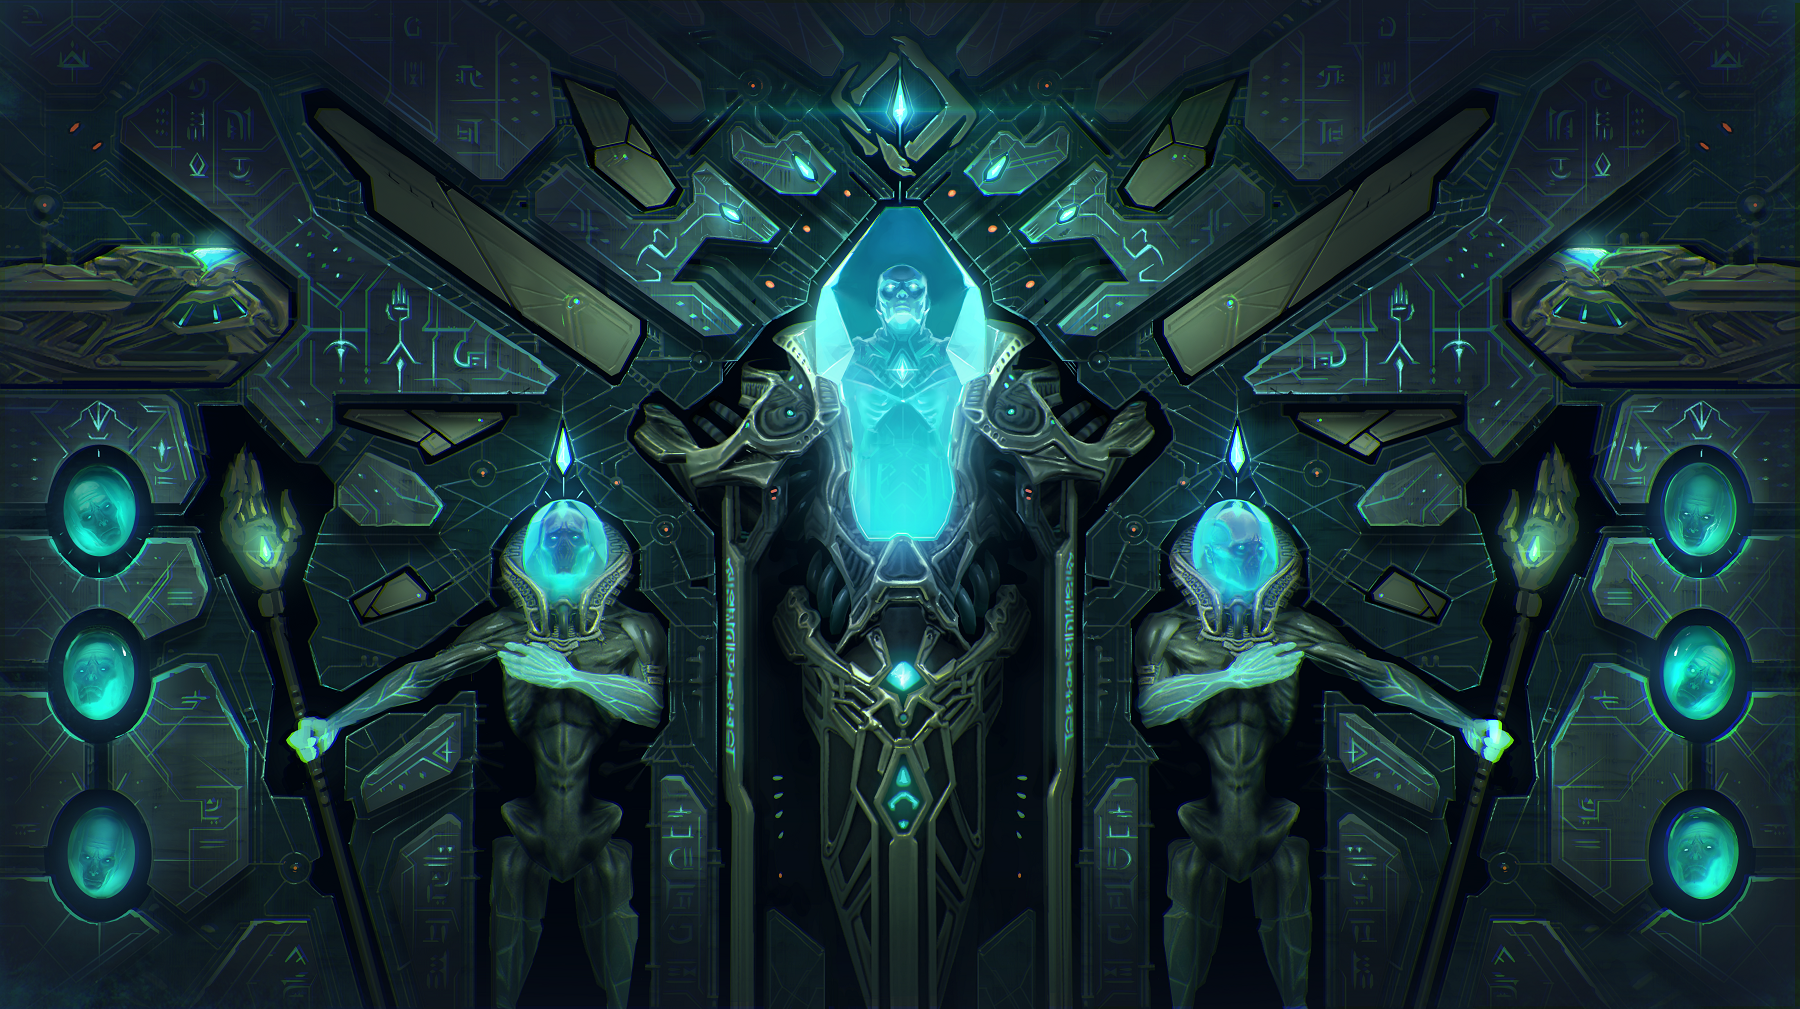 SecretTech_Illustration_Awakenings_05.png